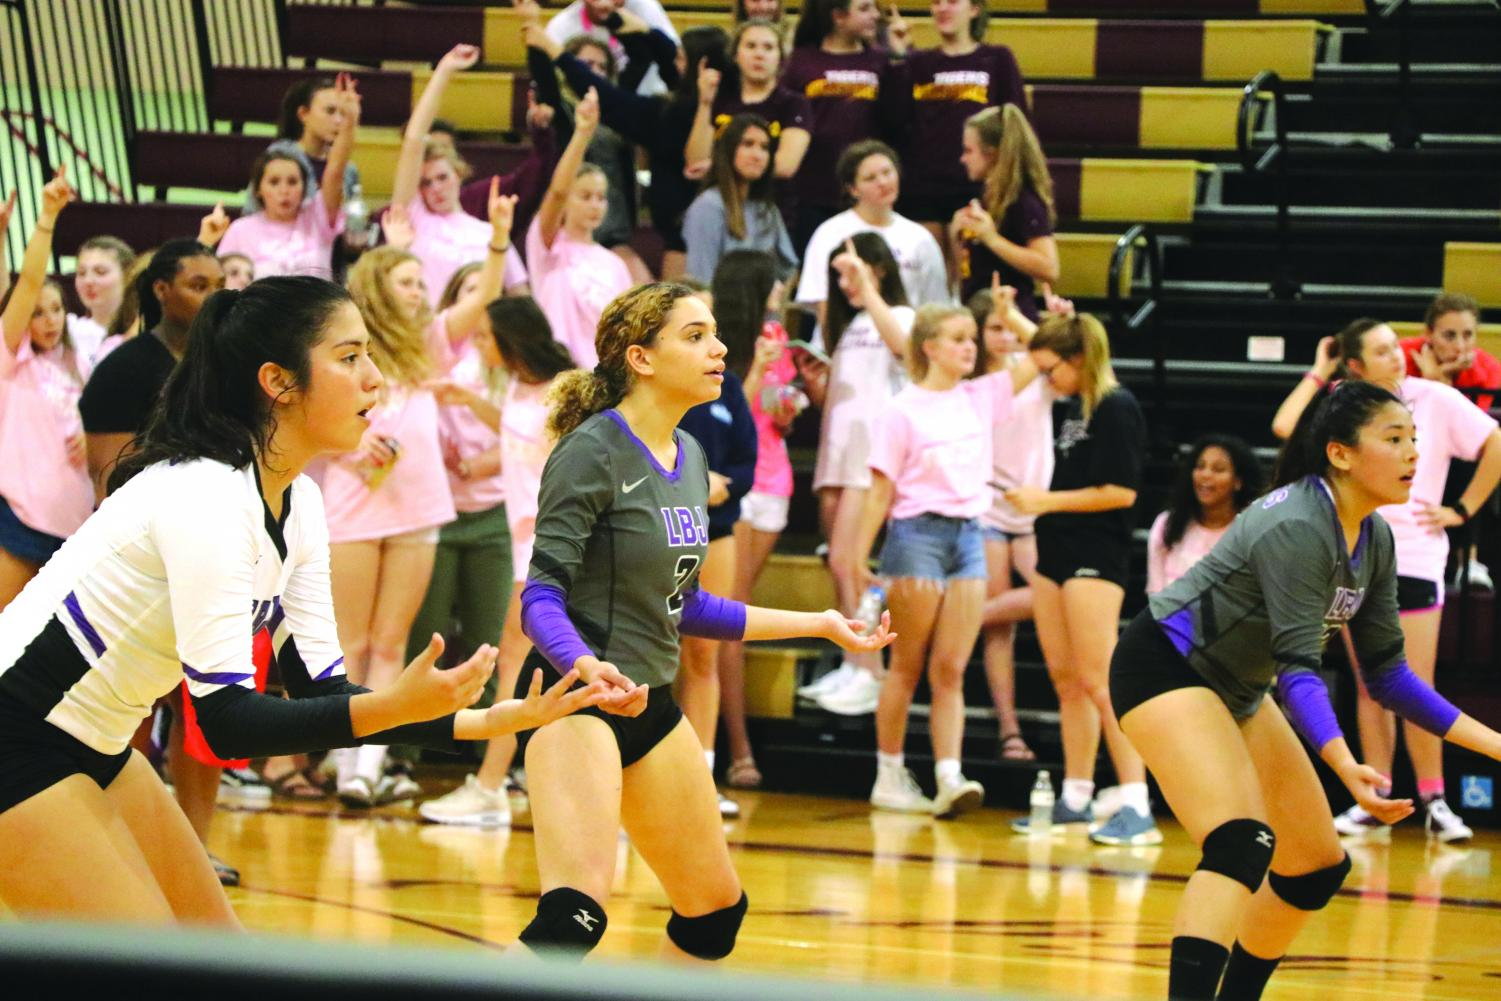 LBJ girls volleyball team plays Dripping Springs, eventually losing 3-0. photo by Jordan Jewell